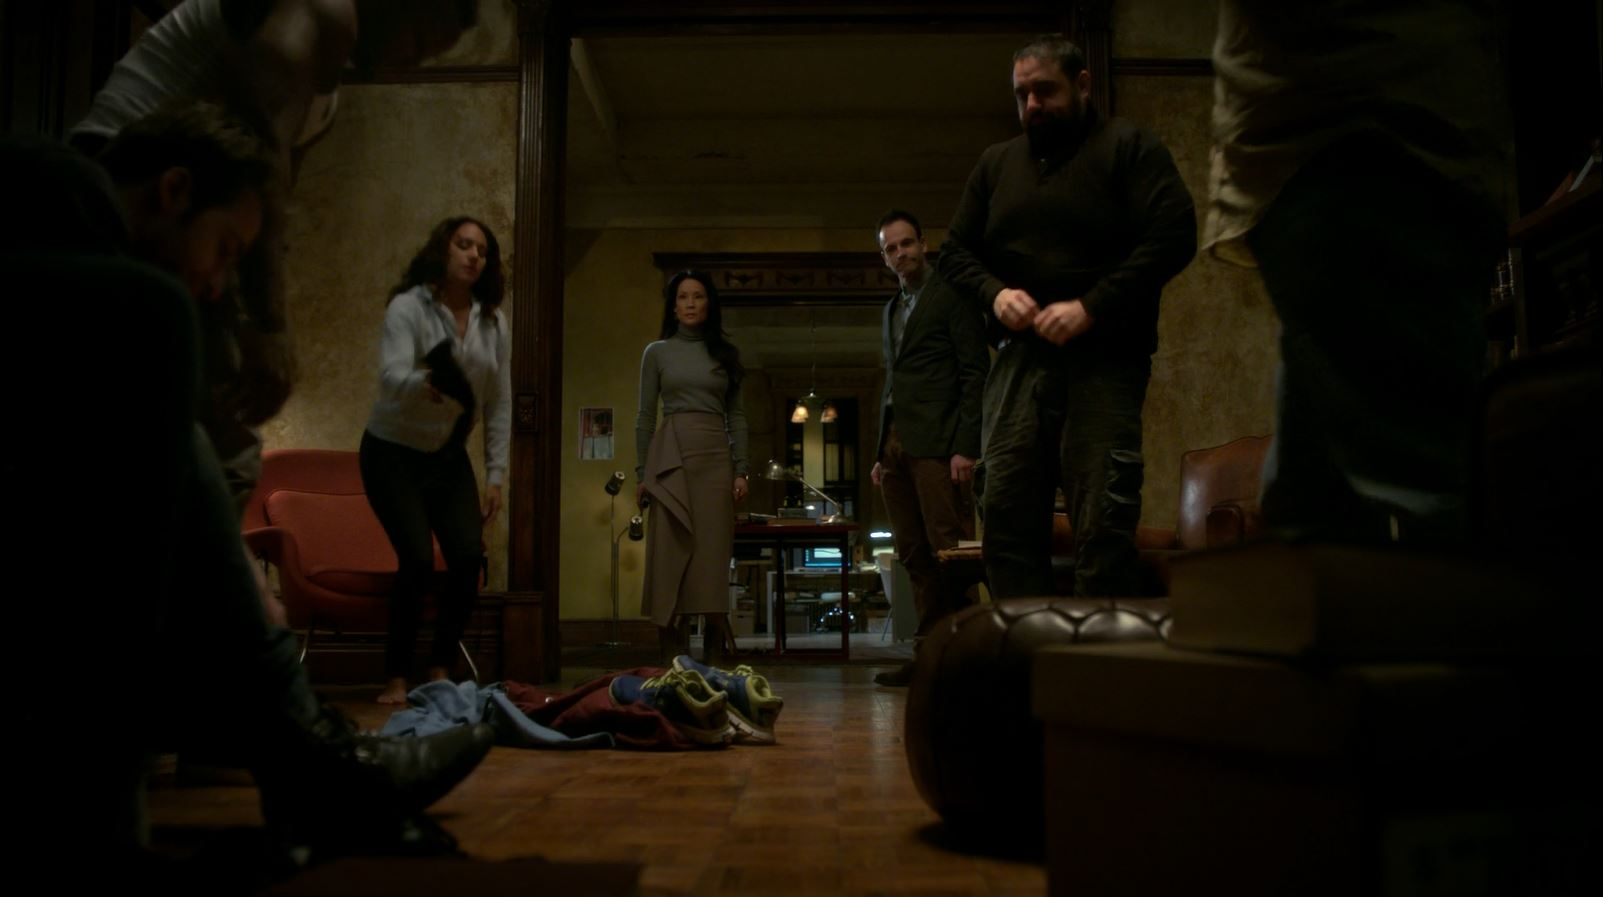 Joan watches Everyone take clothes off. Elementary S4Ep17